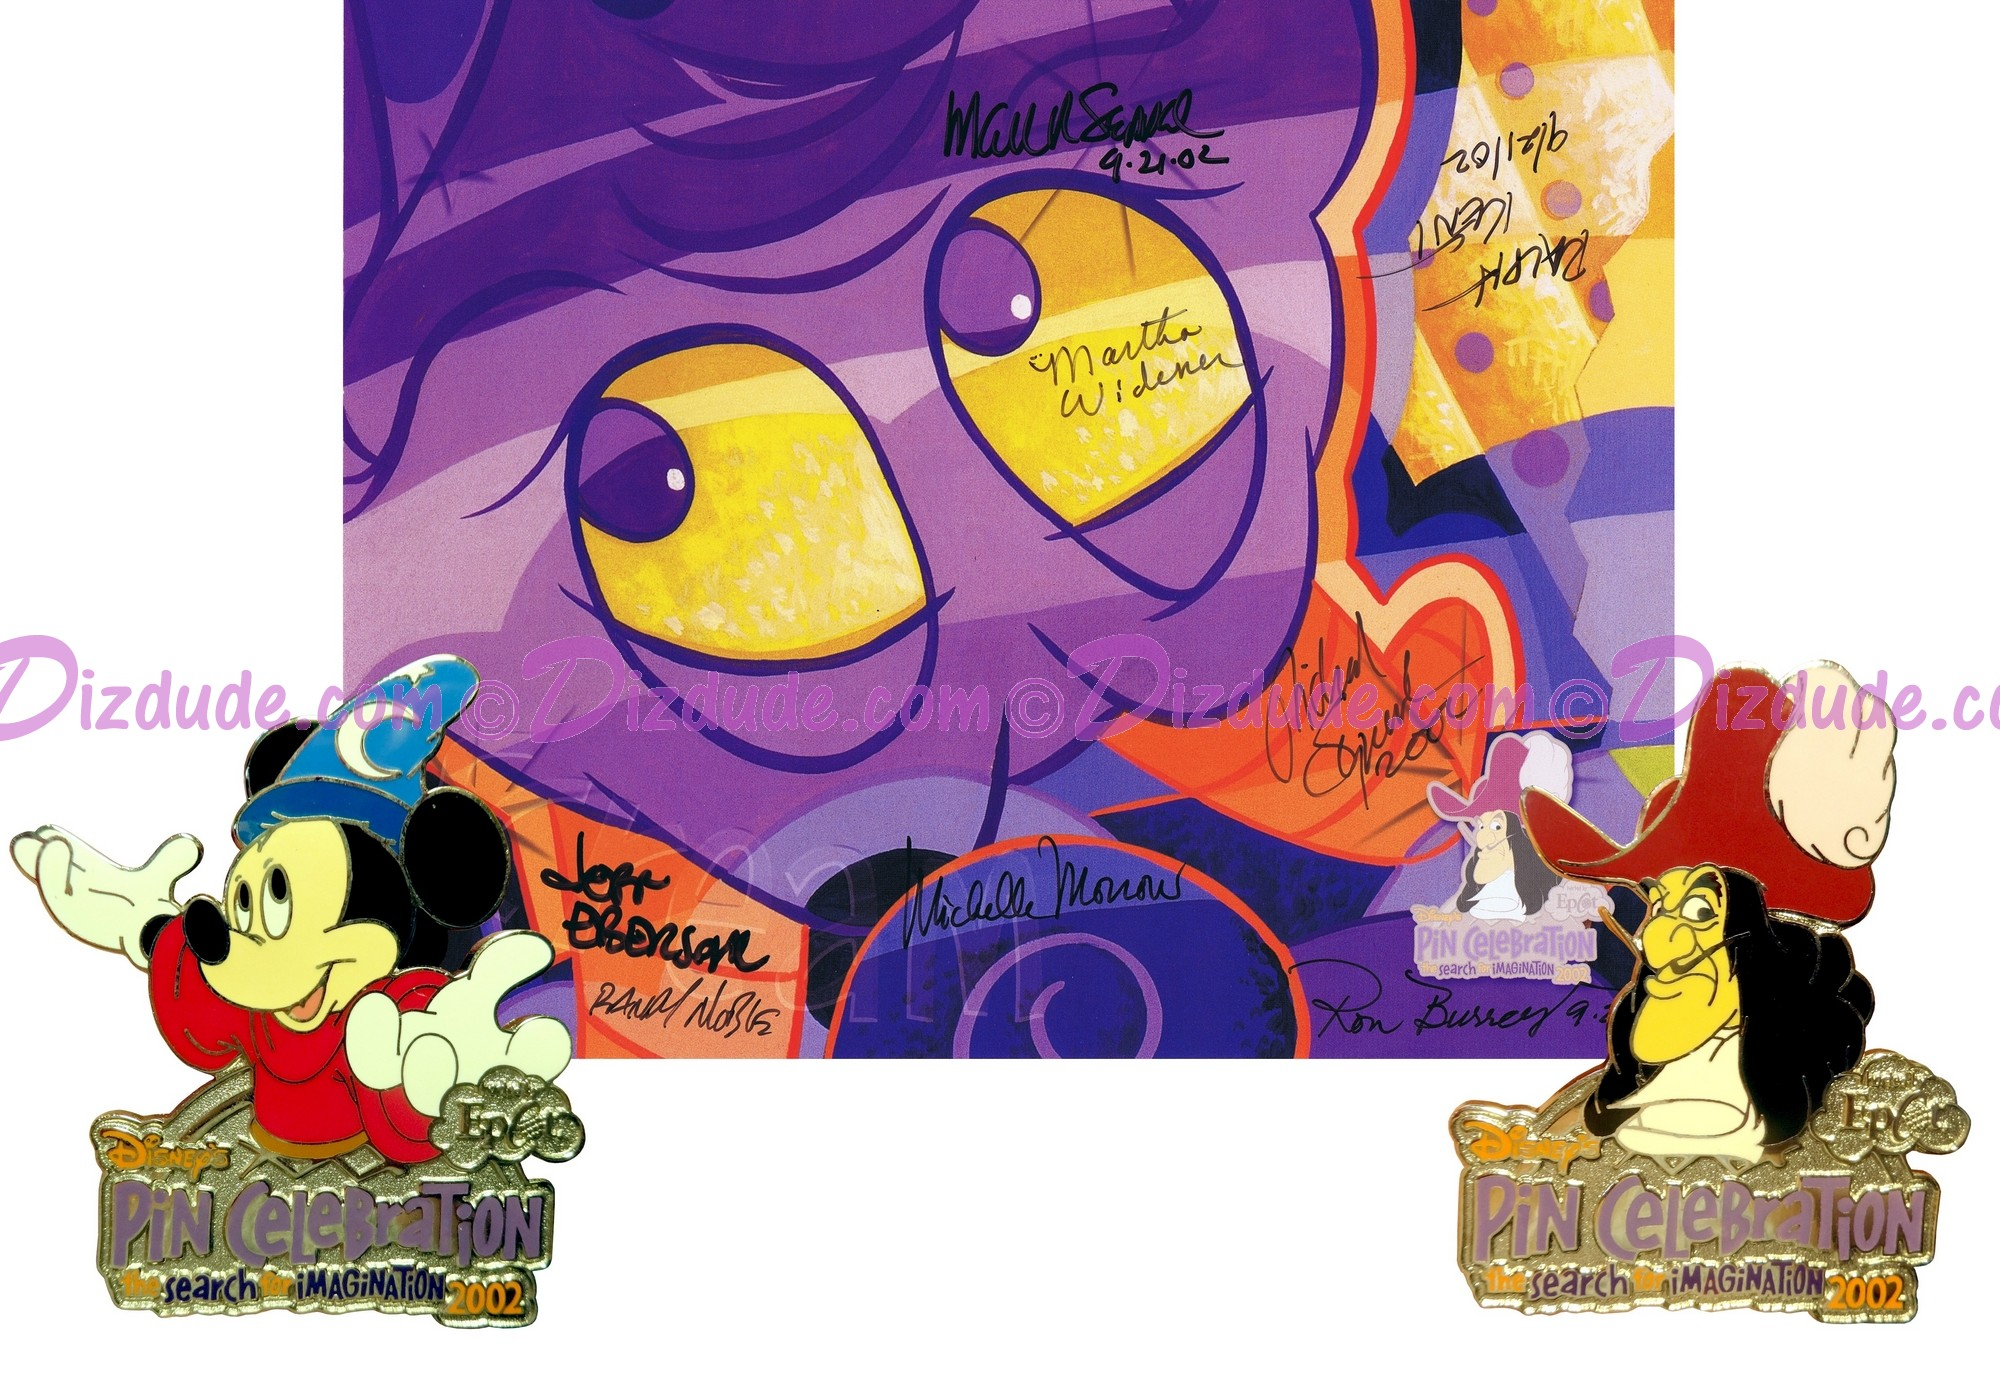 Autographed Walt Disney World Animal Kingdom - Search for Imagination Pin Event 2002 Pin-board with Captain Hook & Sorcerer Mickey Completer Pins © Dizdude.com